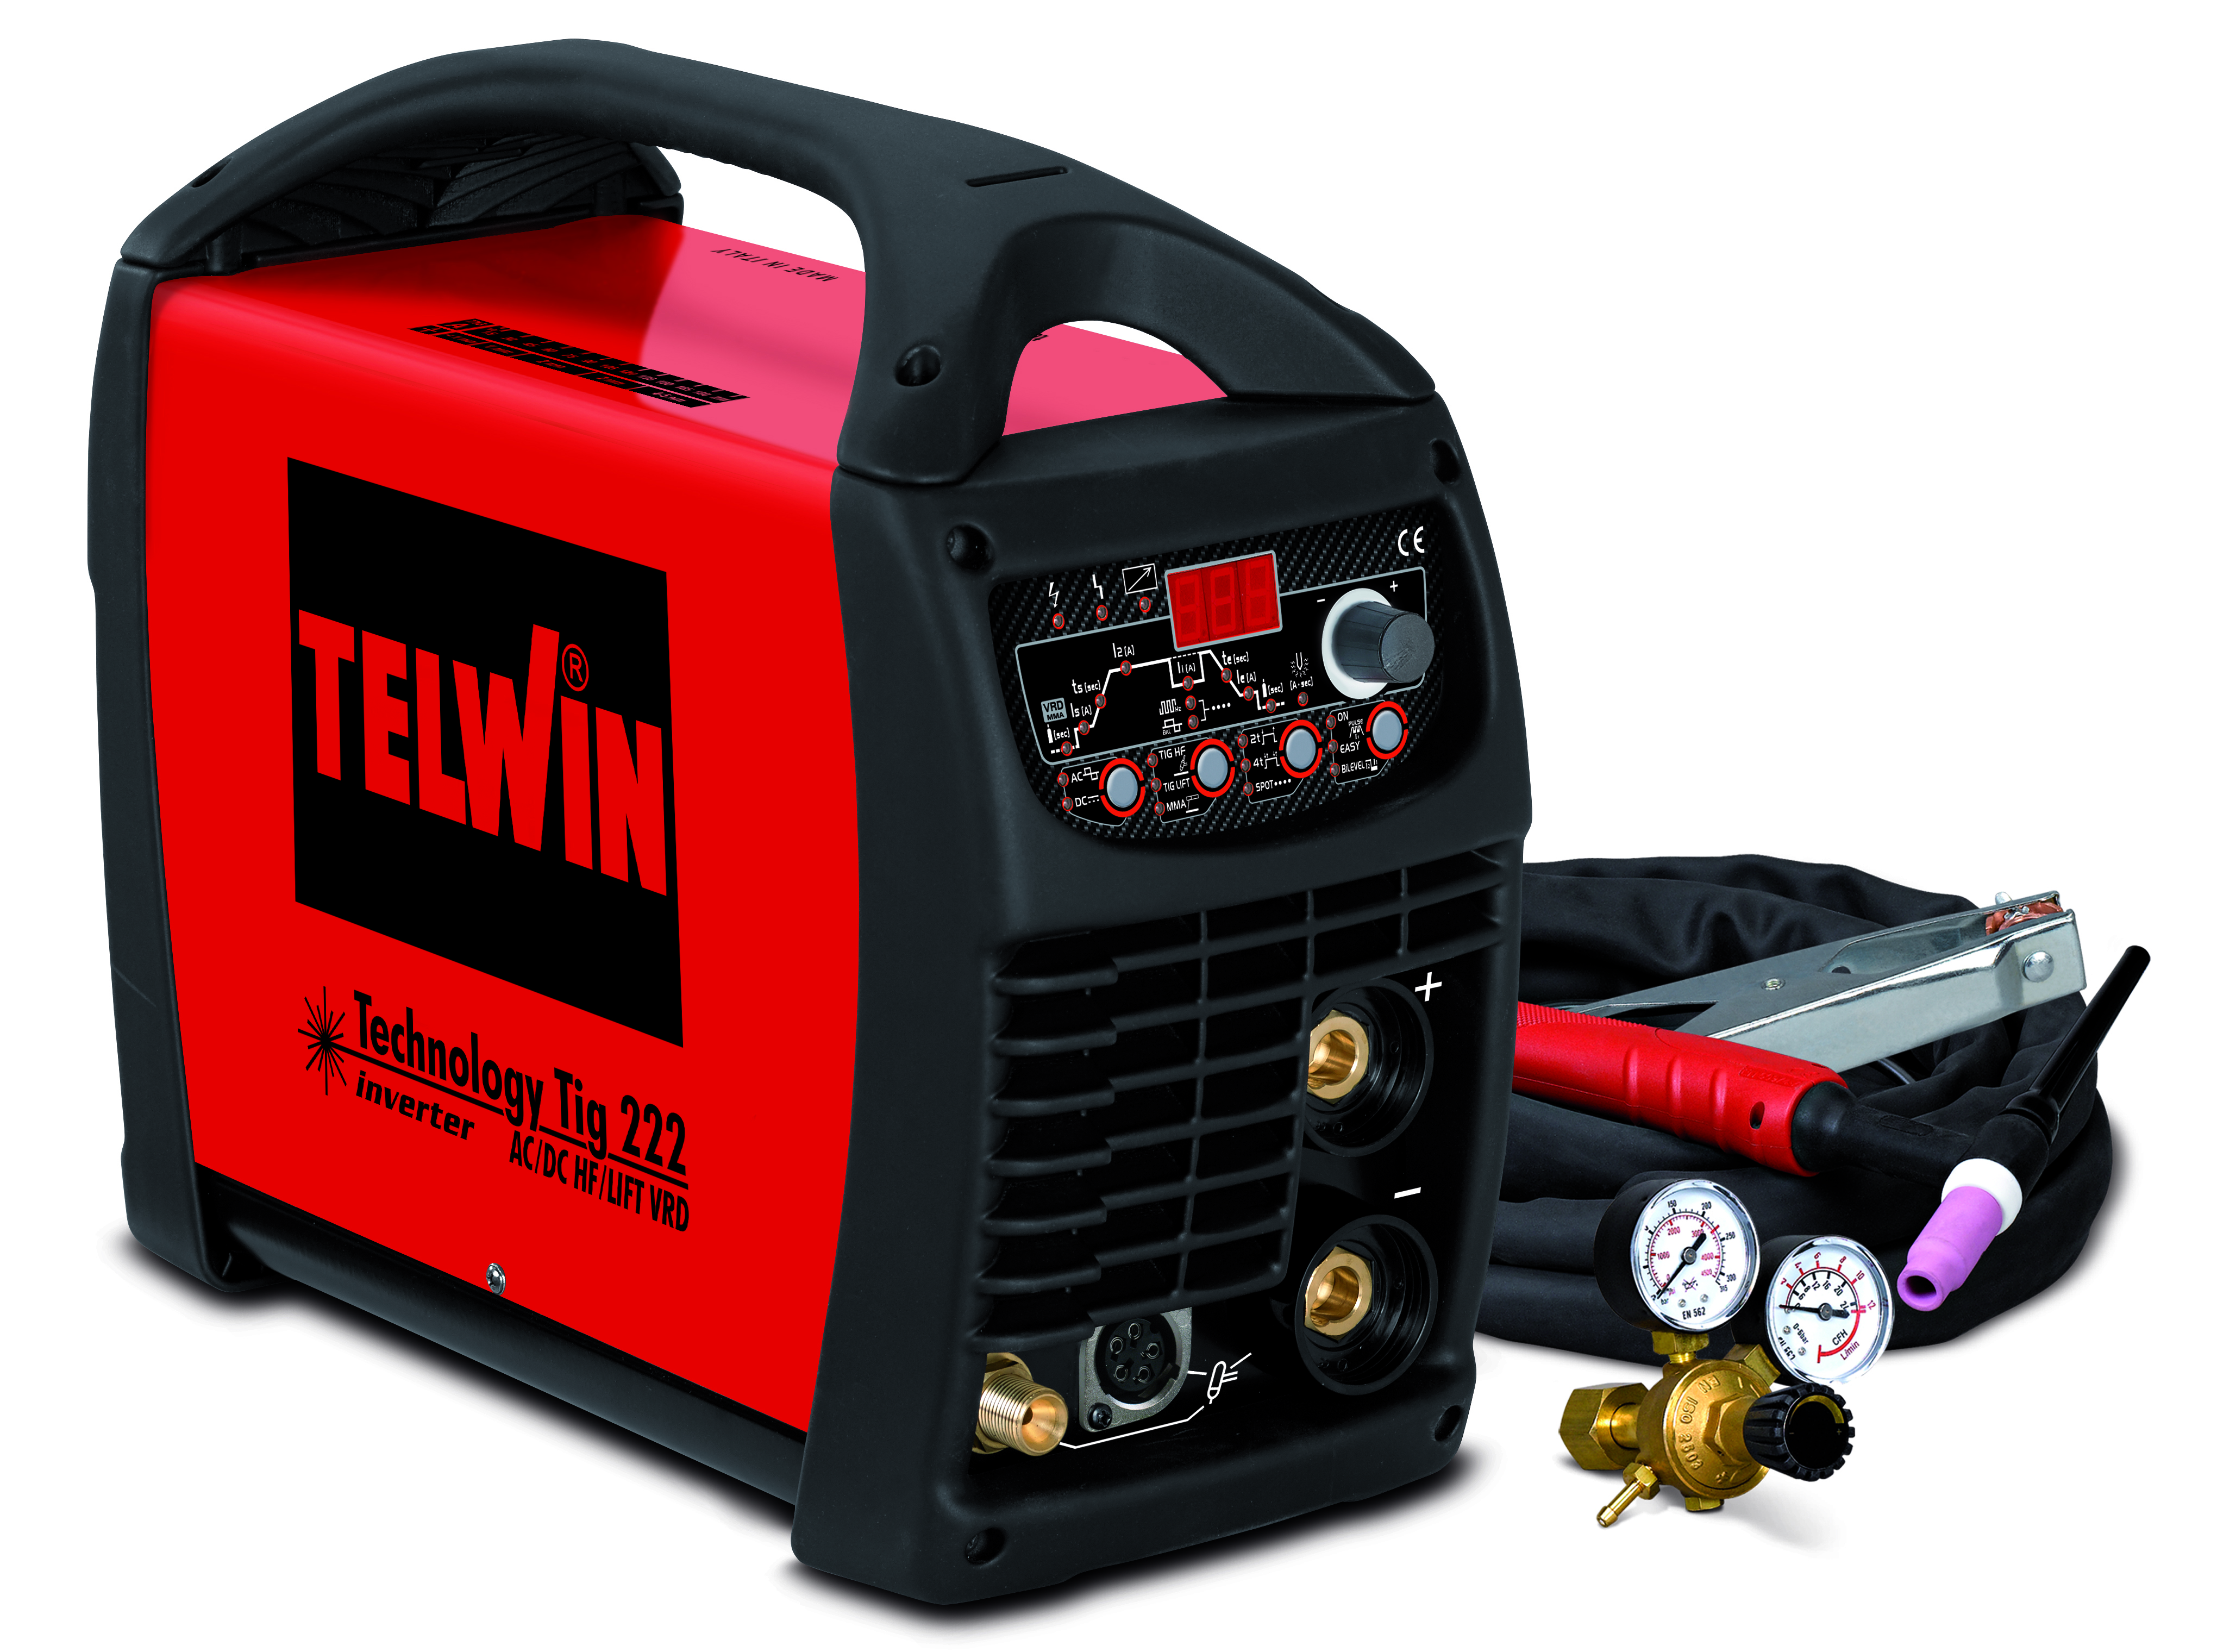 TELWIN 852054 - TECHNOLOGY T.222 AC/DC HF/LIFT 230V+ACC, TIG and MMA Inverter Welding Machine – P-Max(5.5kW)